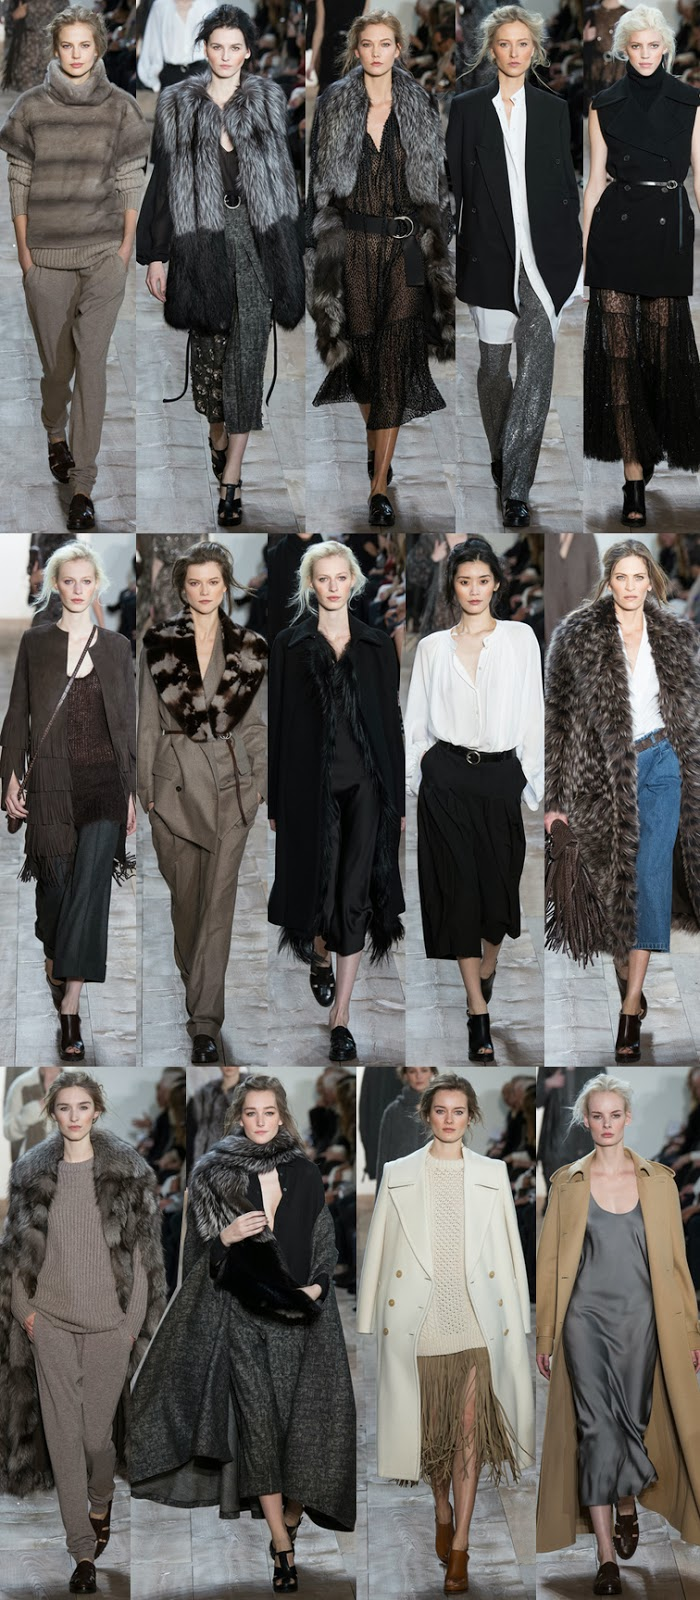 Michael Kors fall winter 2014 runway collection, NYFW, fashion week, boho chic